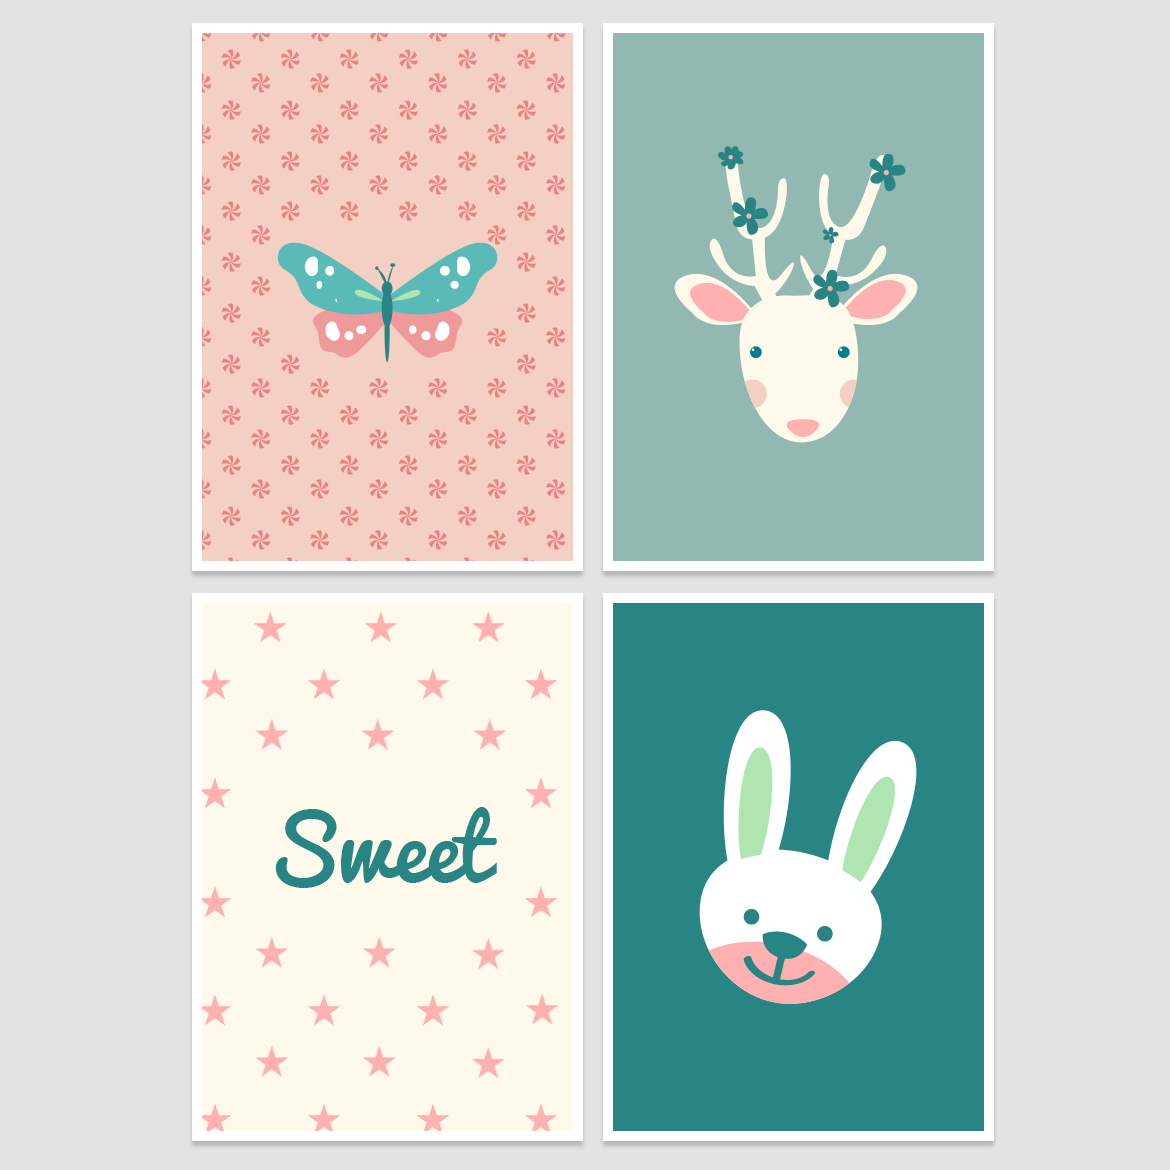 Nursery Wall Decor – Free Printable! - Belivindesign - Free Printable Decor